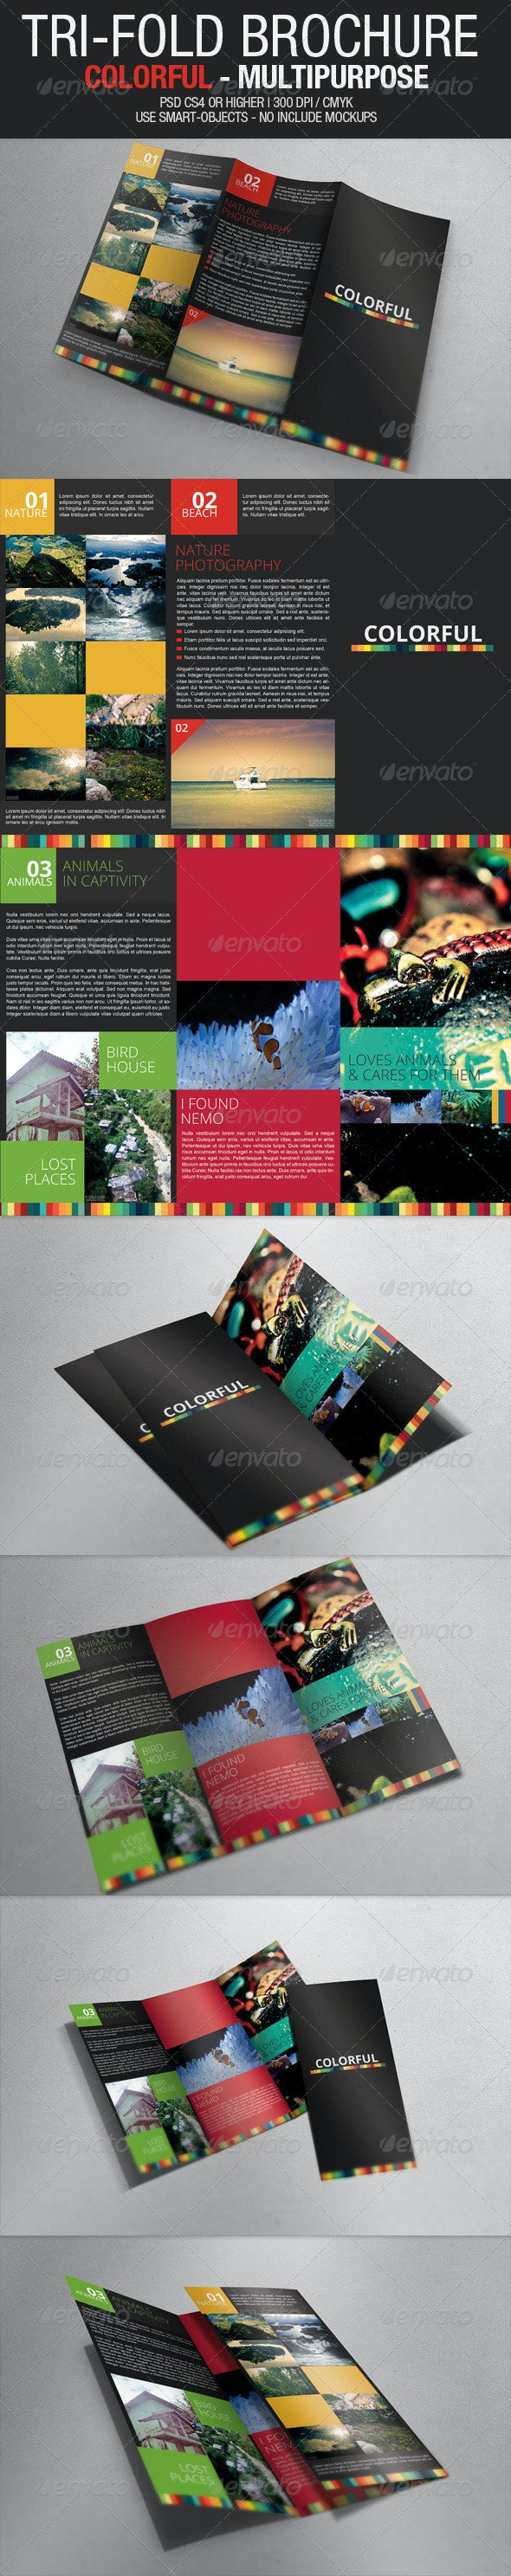 Tri Fold Brochure - Colorful Multipurpose - Brochures Print Templates